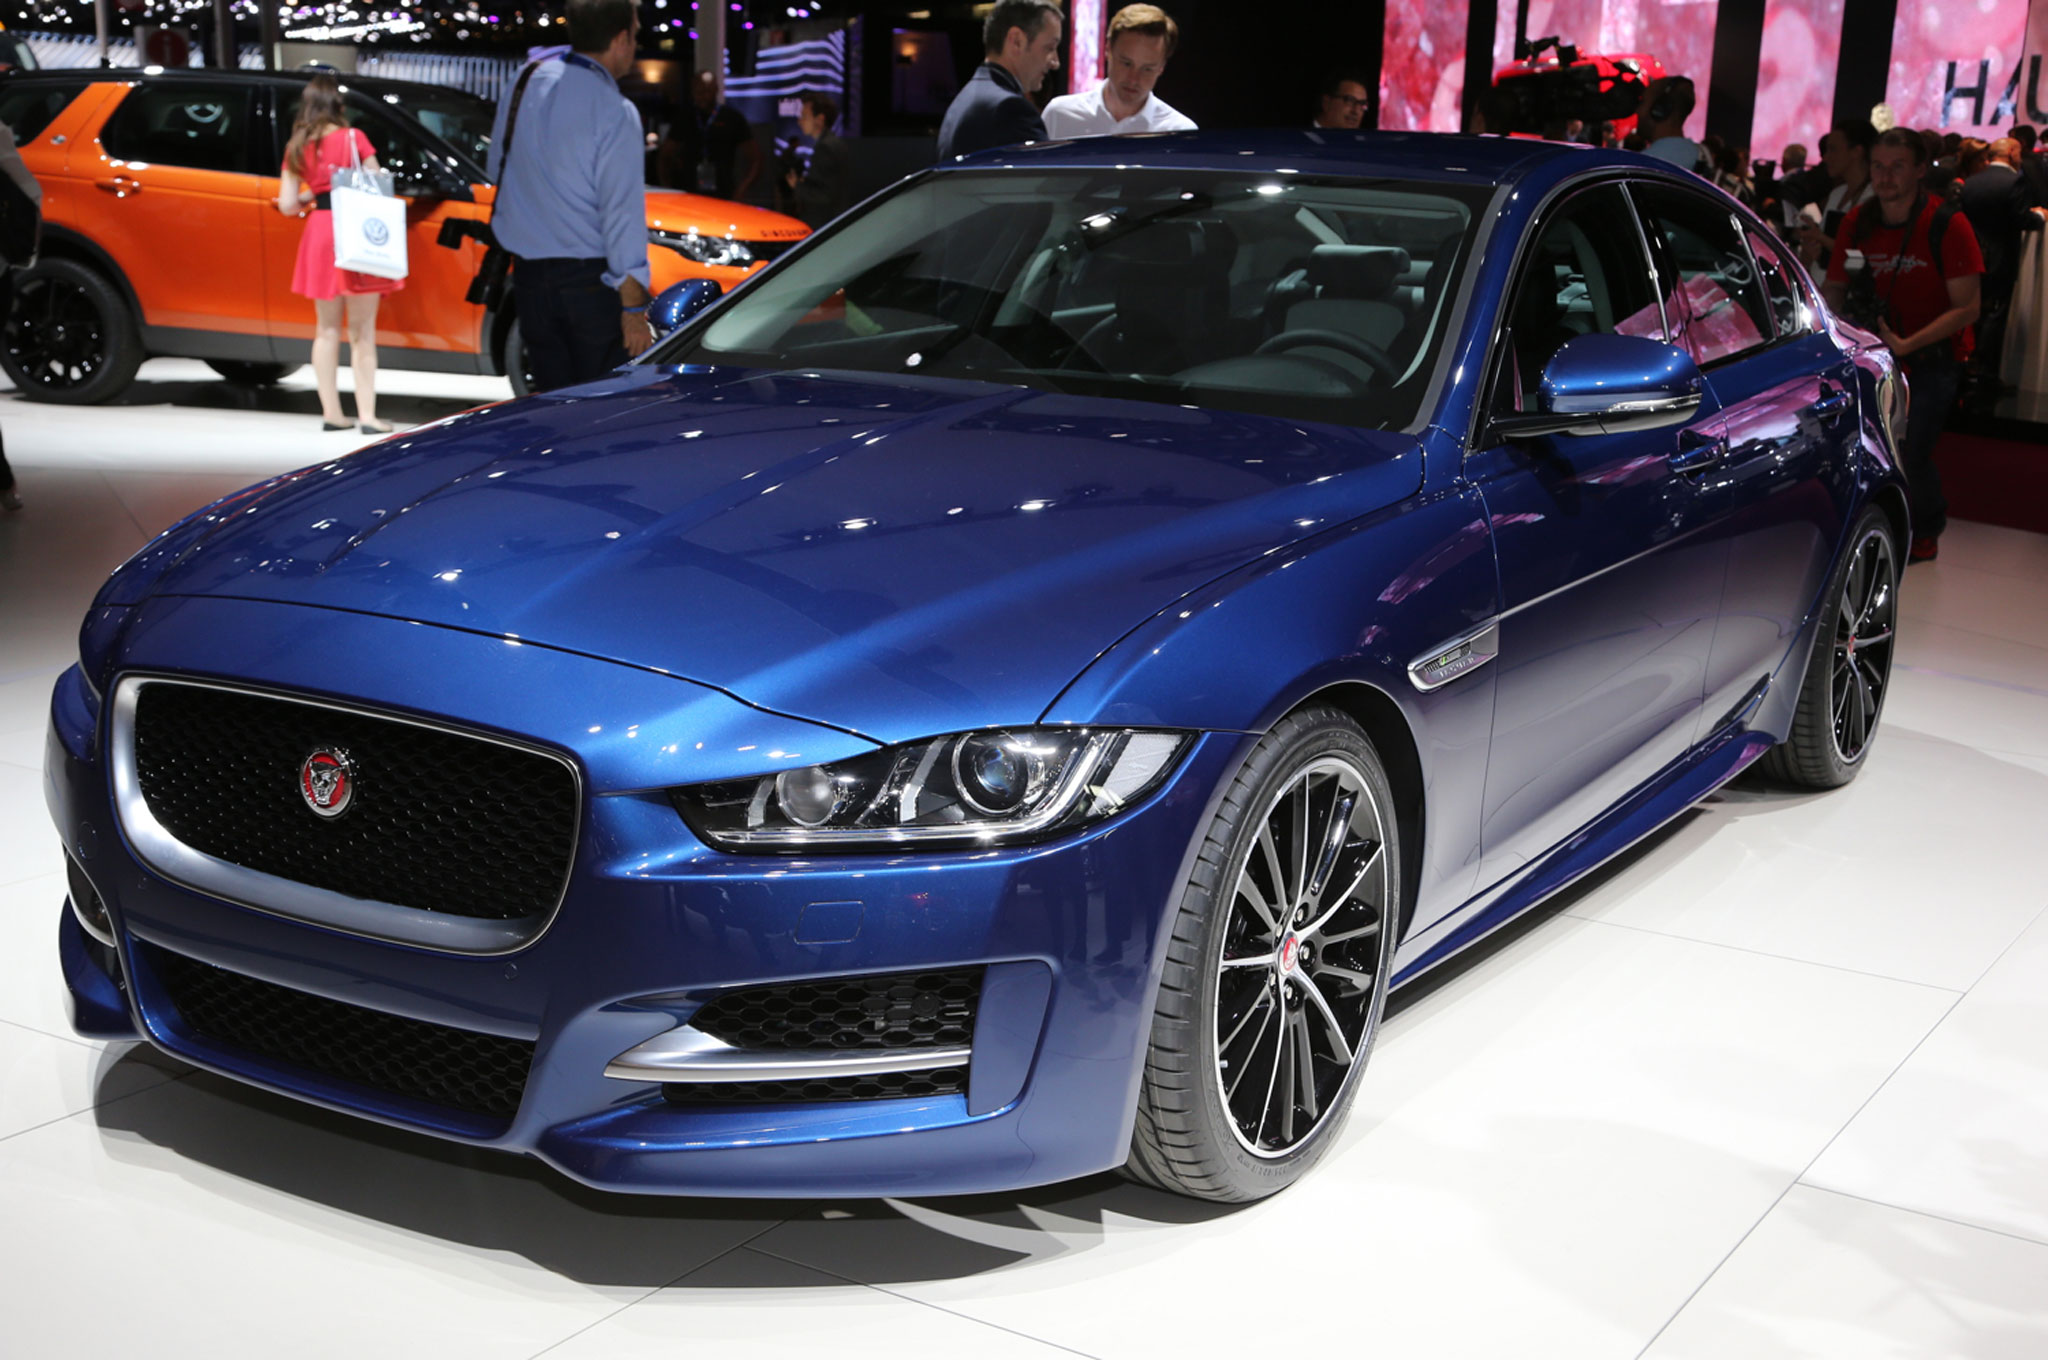 2017 jaguar xe first look the most important car in jaguar 39 s history. Black Bedroom Furniture Sets. Home Design Ideas